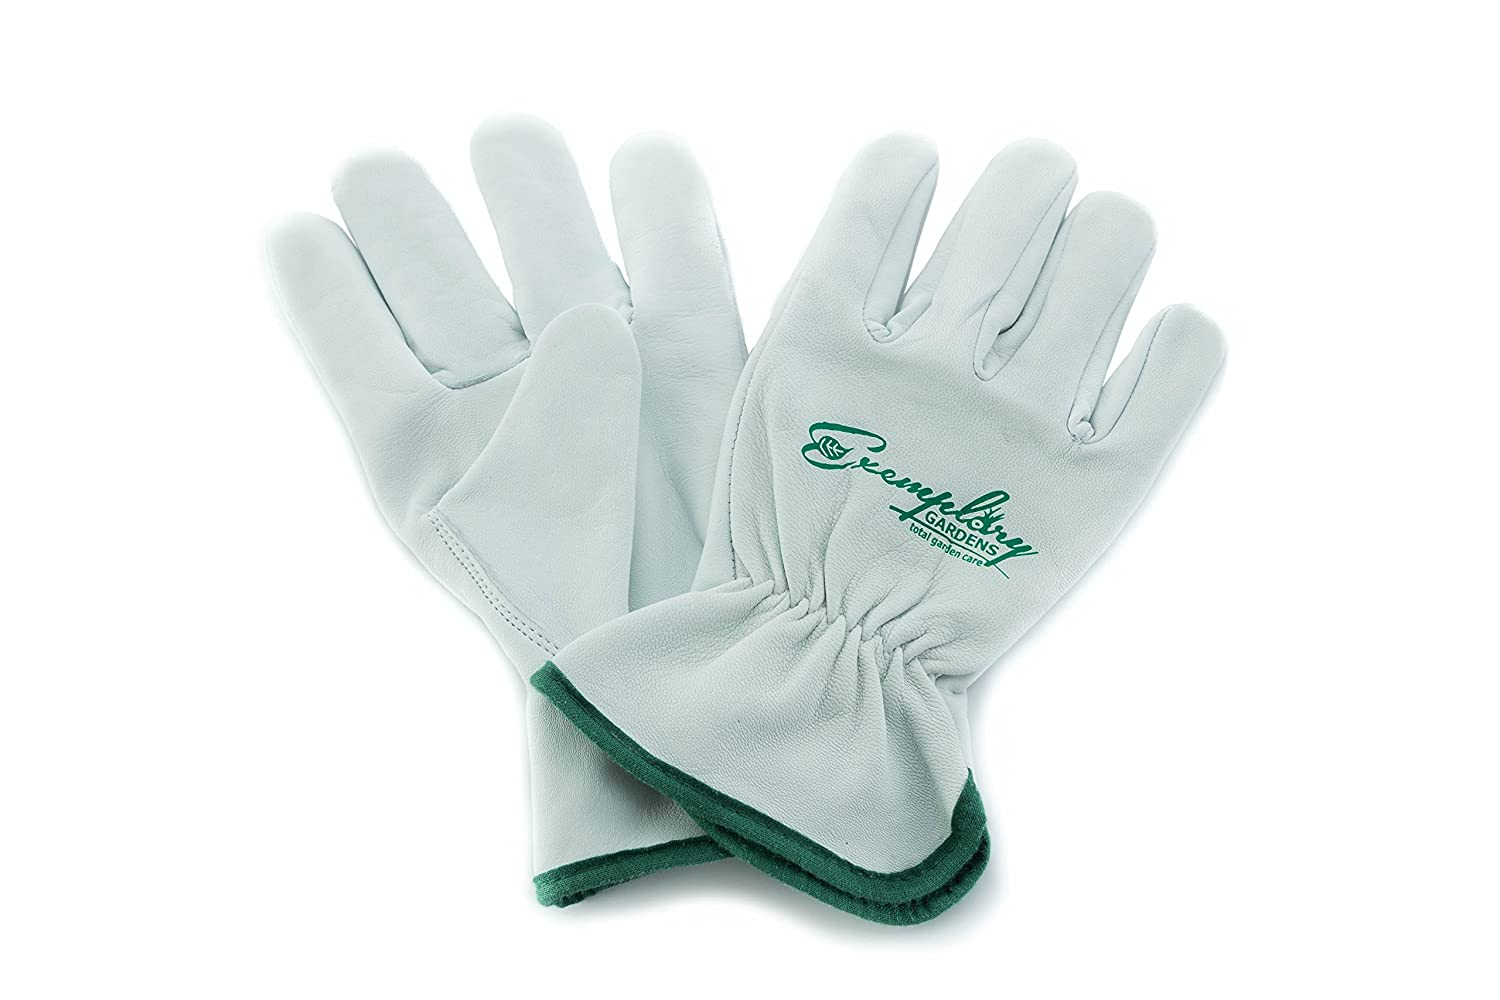 Heavy Duty Goatskin Leather Work Gloves for Men and Women. General Purpose Utility, Driver, Rigger, Safety, and Gardening Gloves (Medium)